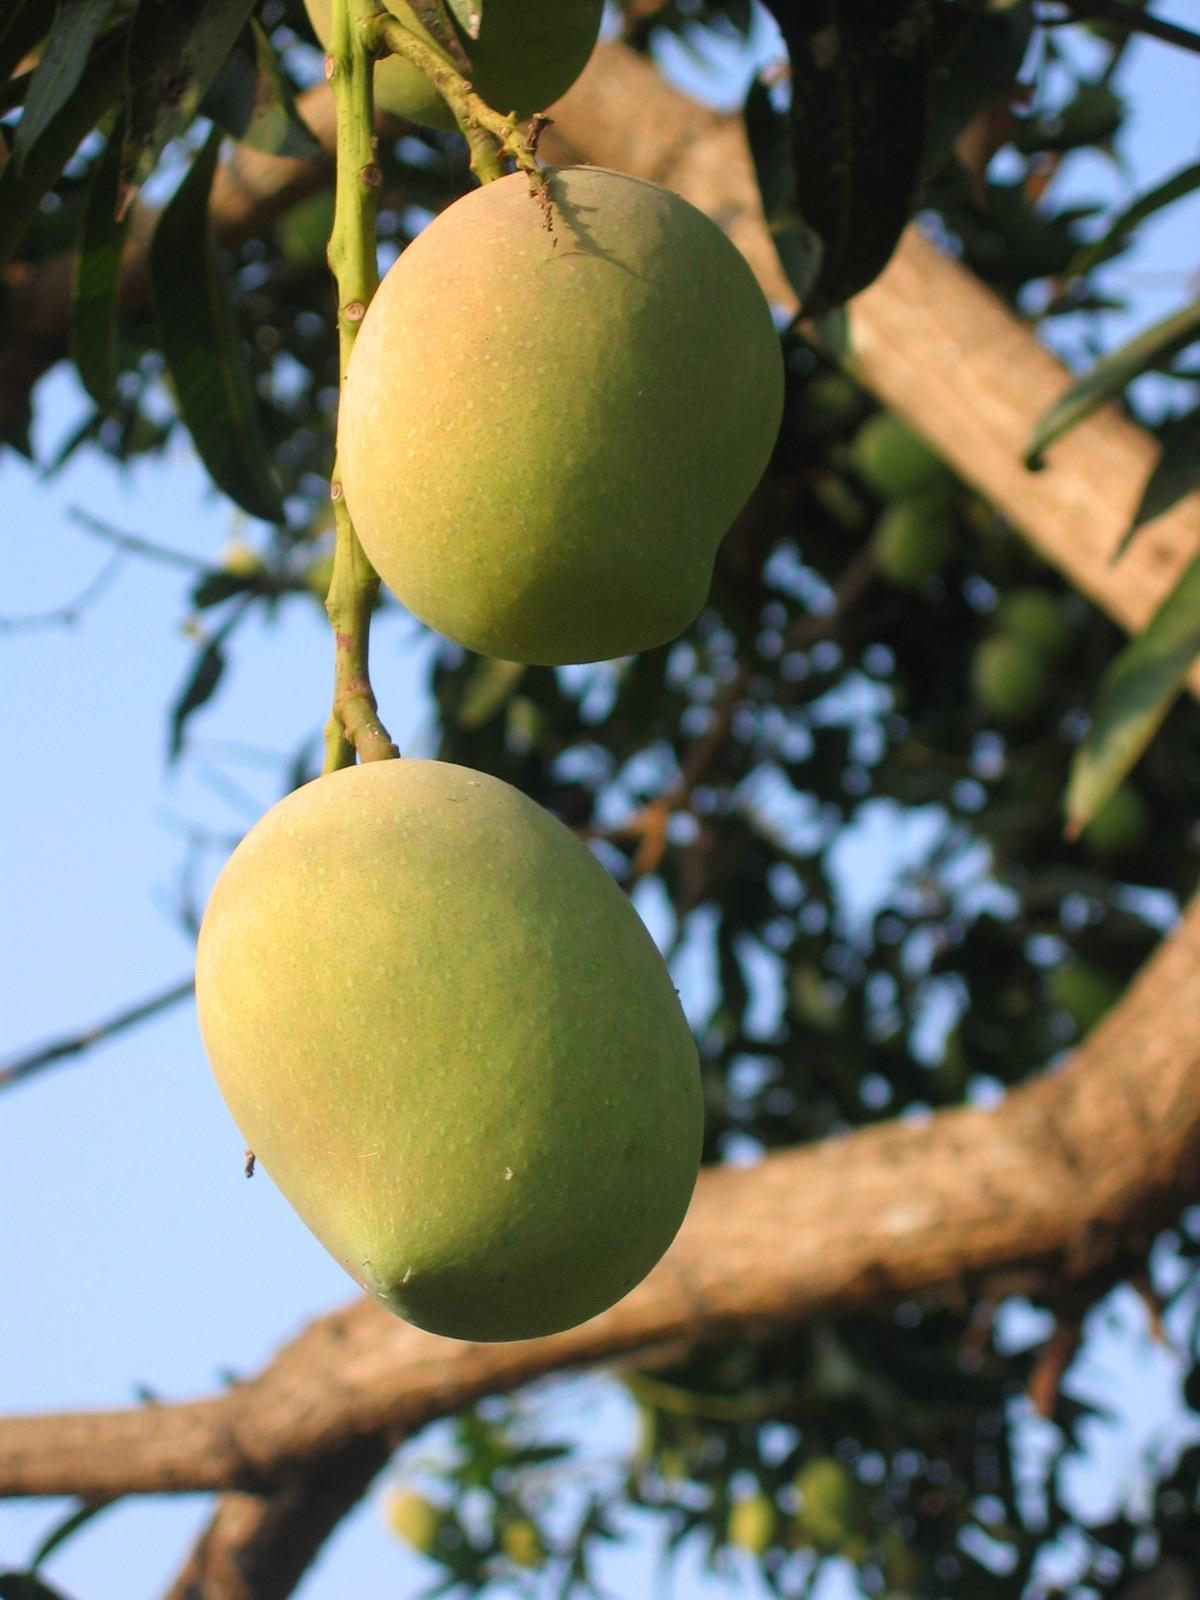 Our organic mangos are for our guests, fresh off the tree